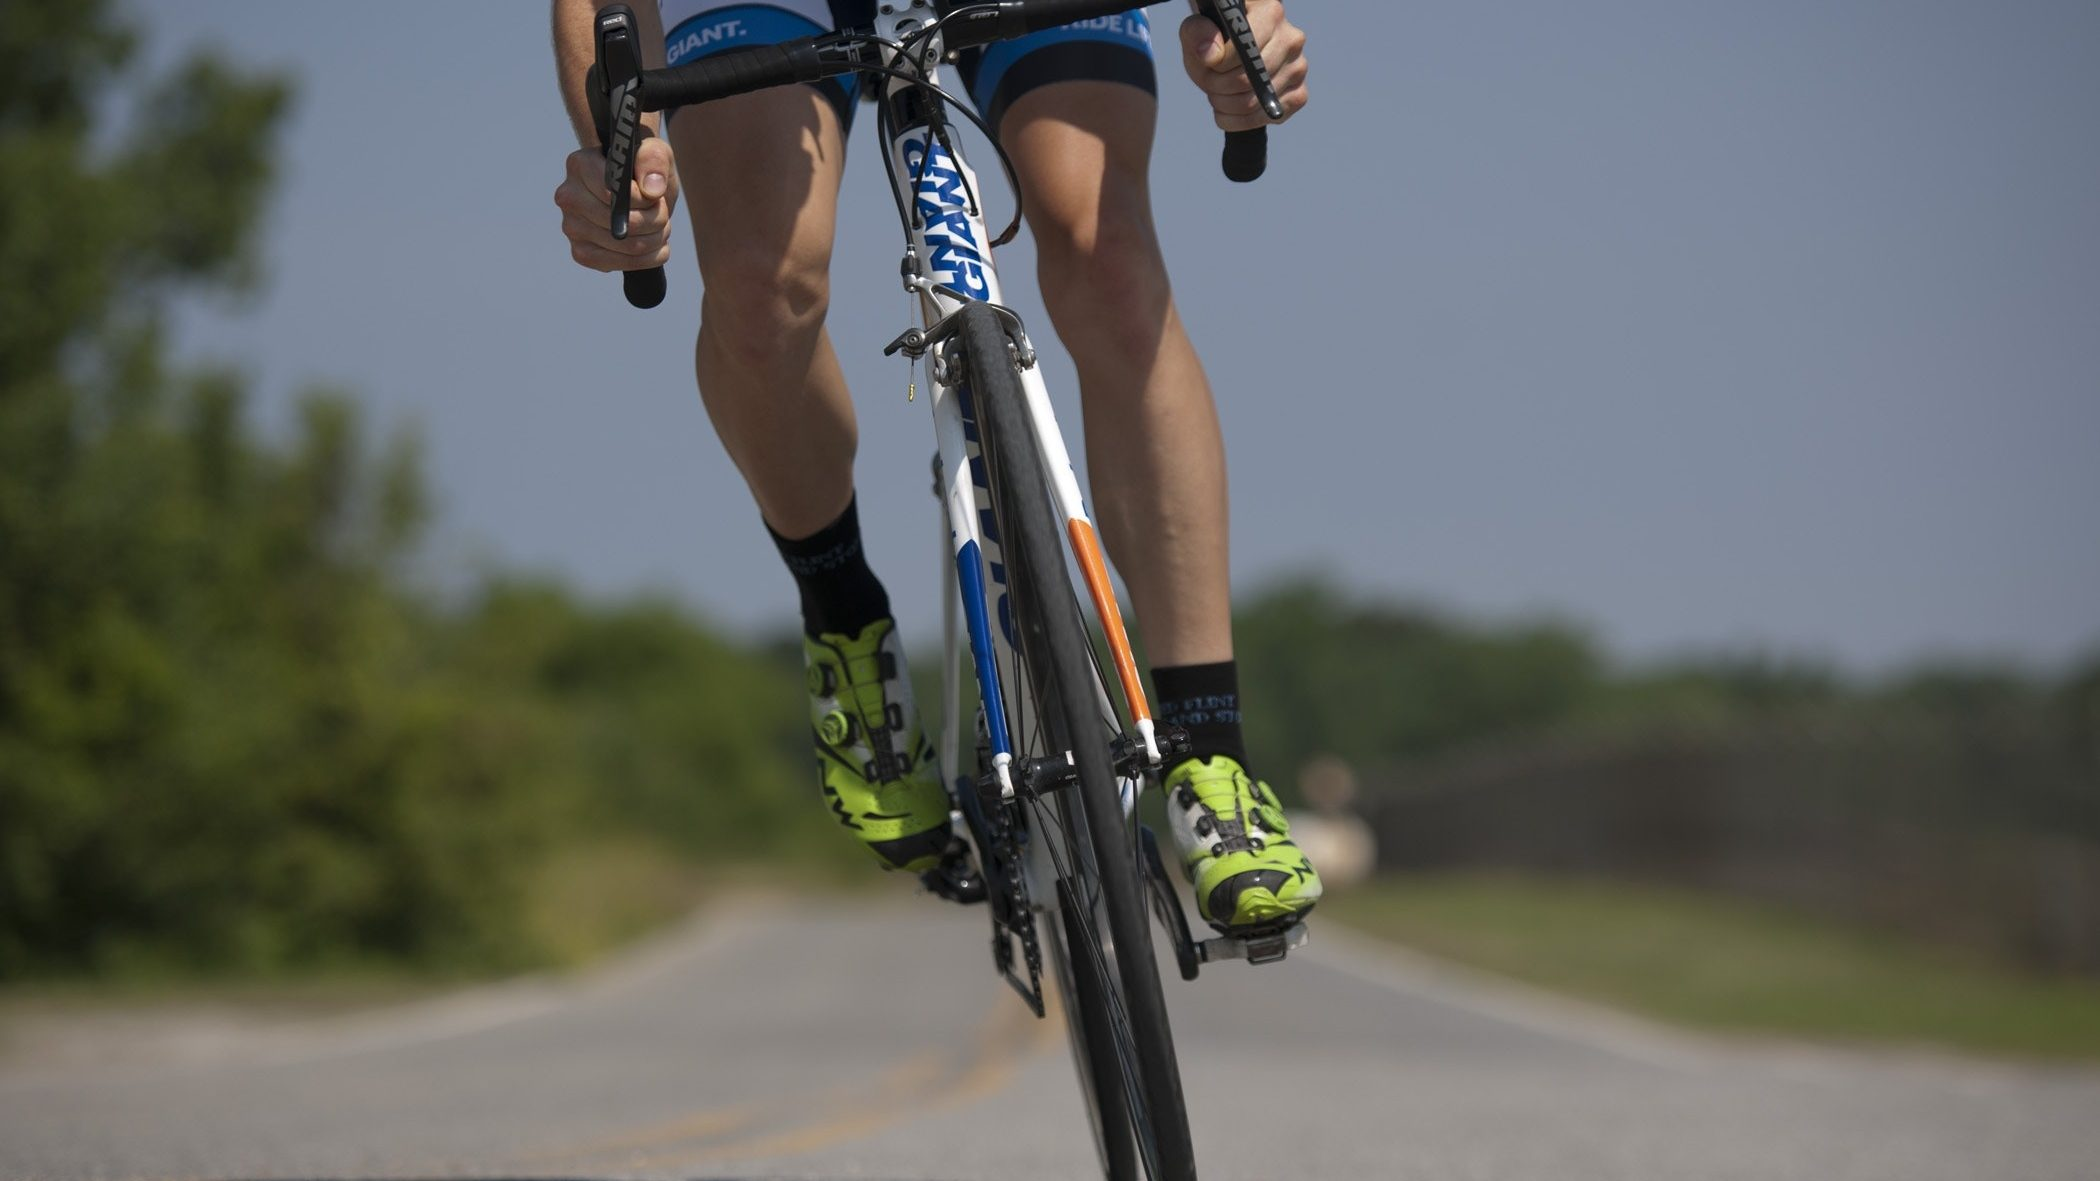 person-riding-road-bike-on-the-road-38296